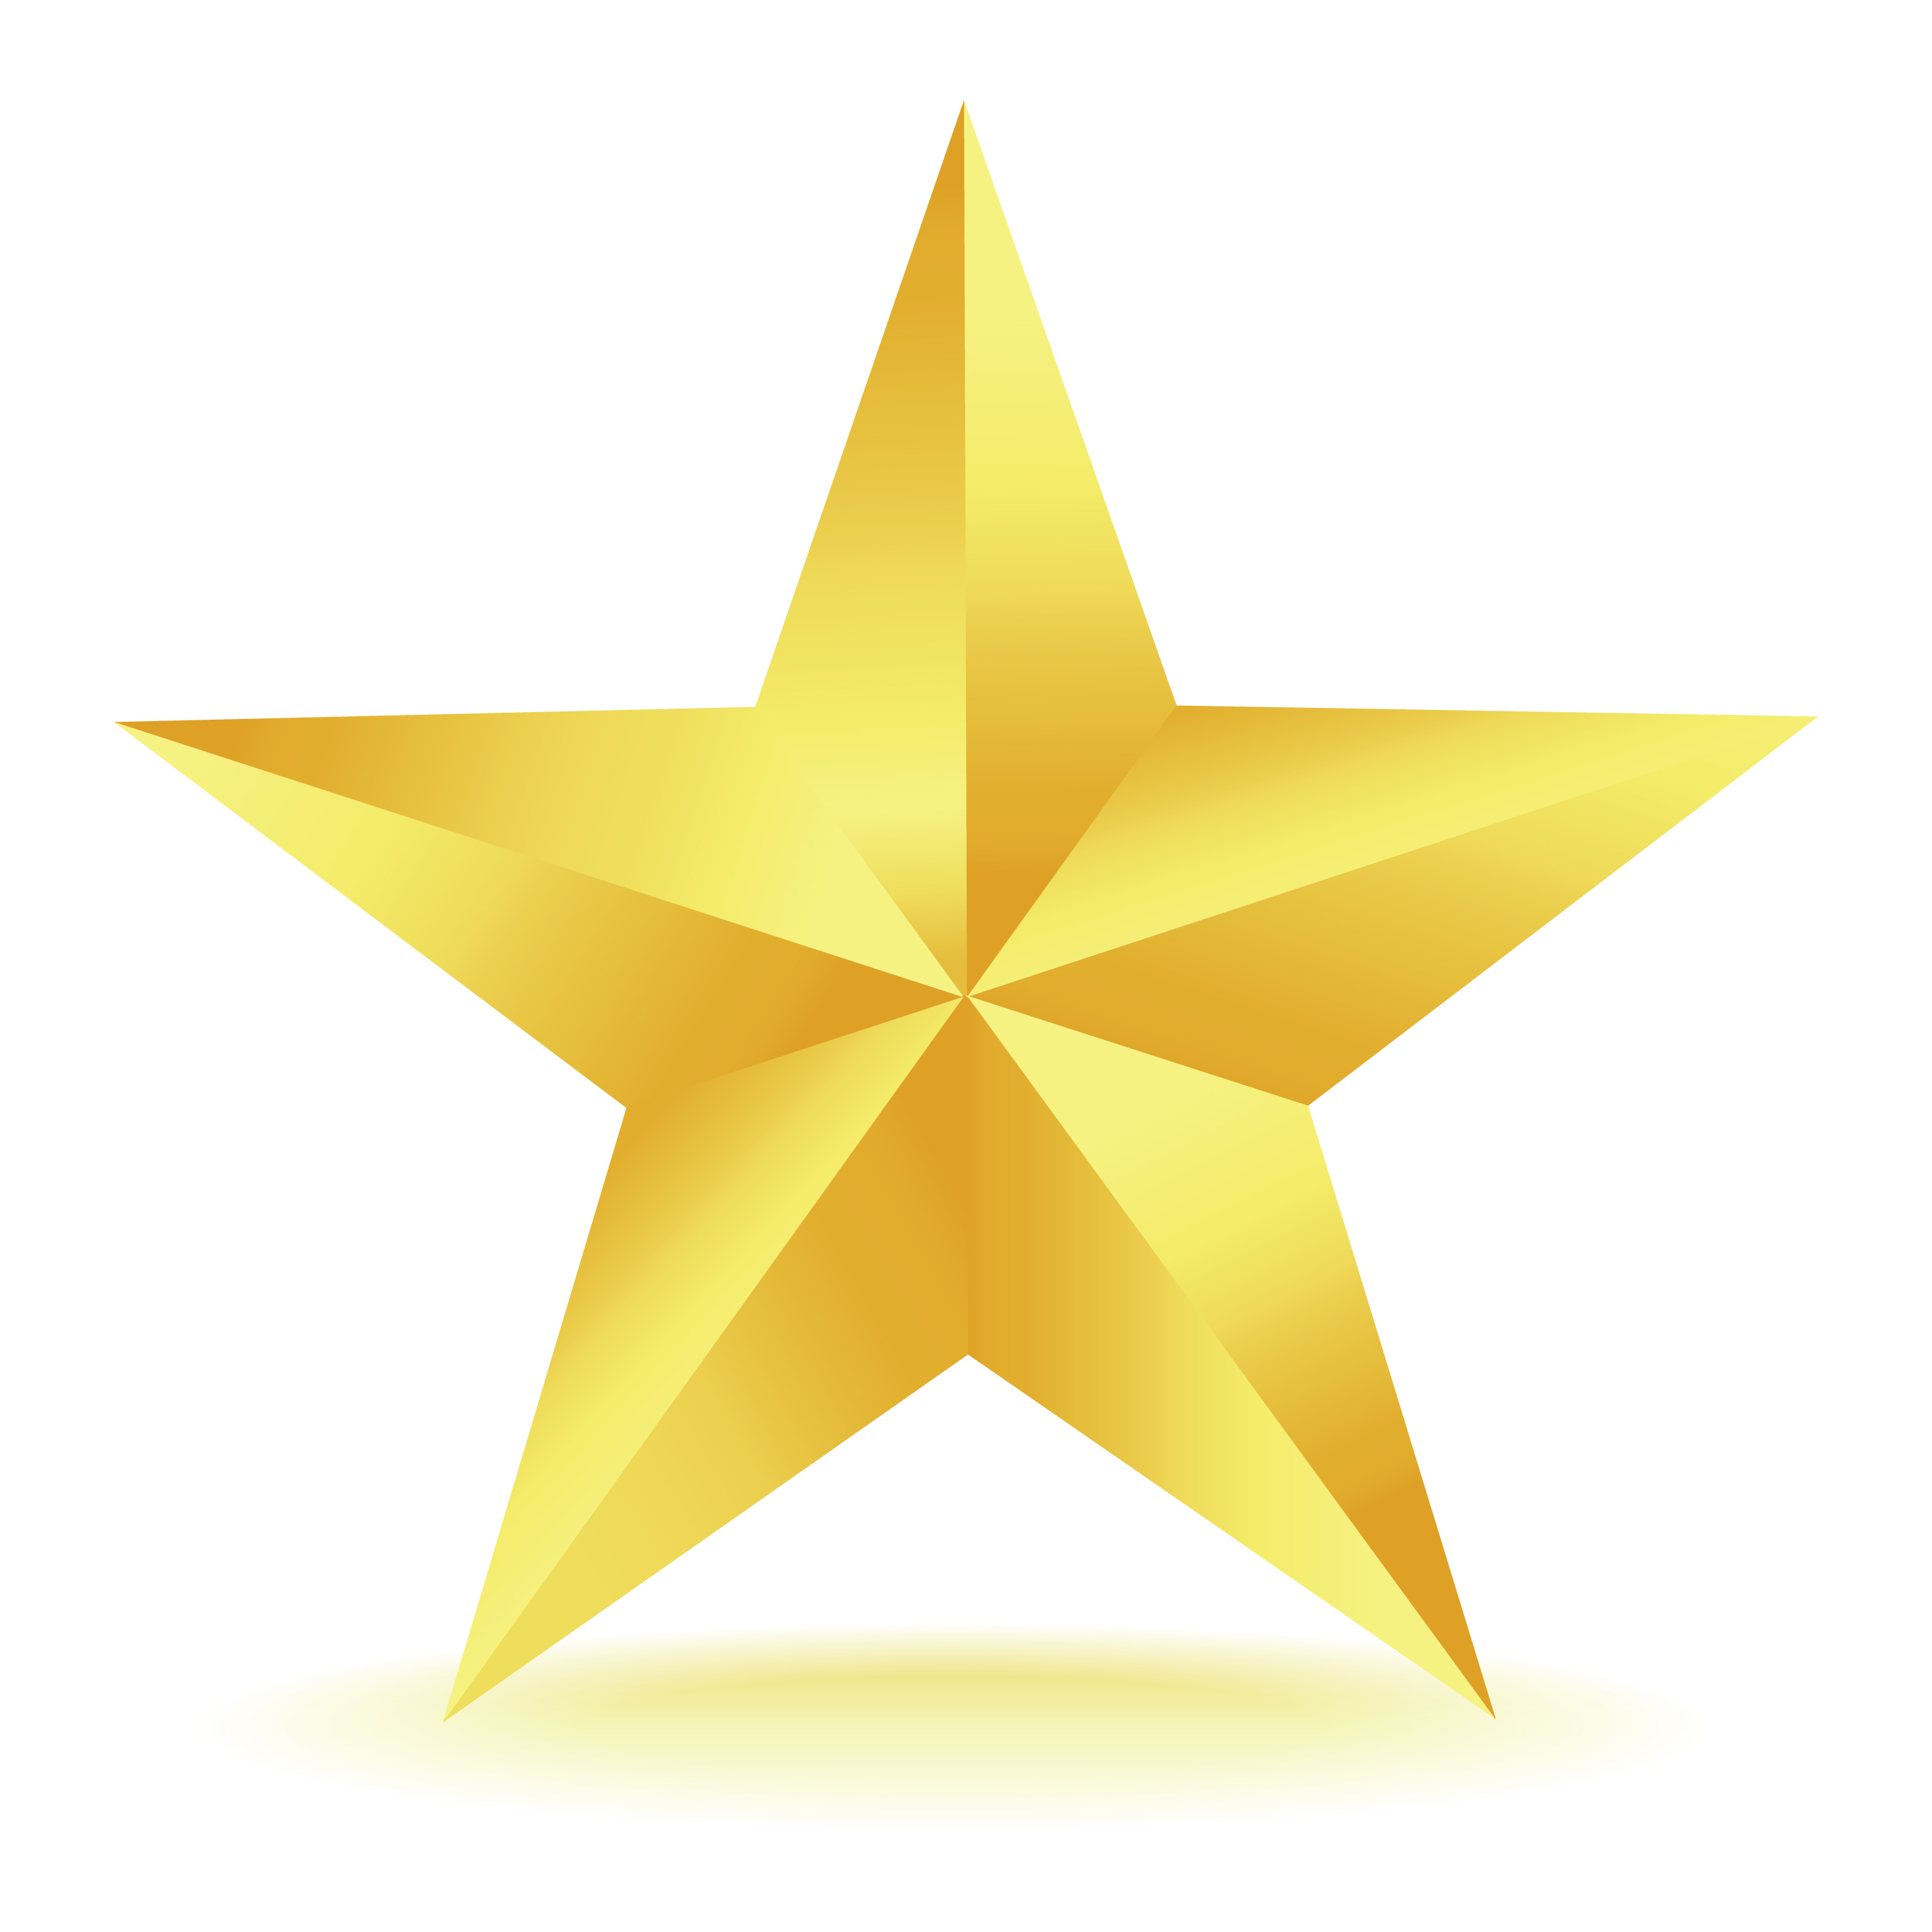 Star No Background Clipart - Clipart Kid